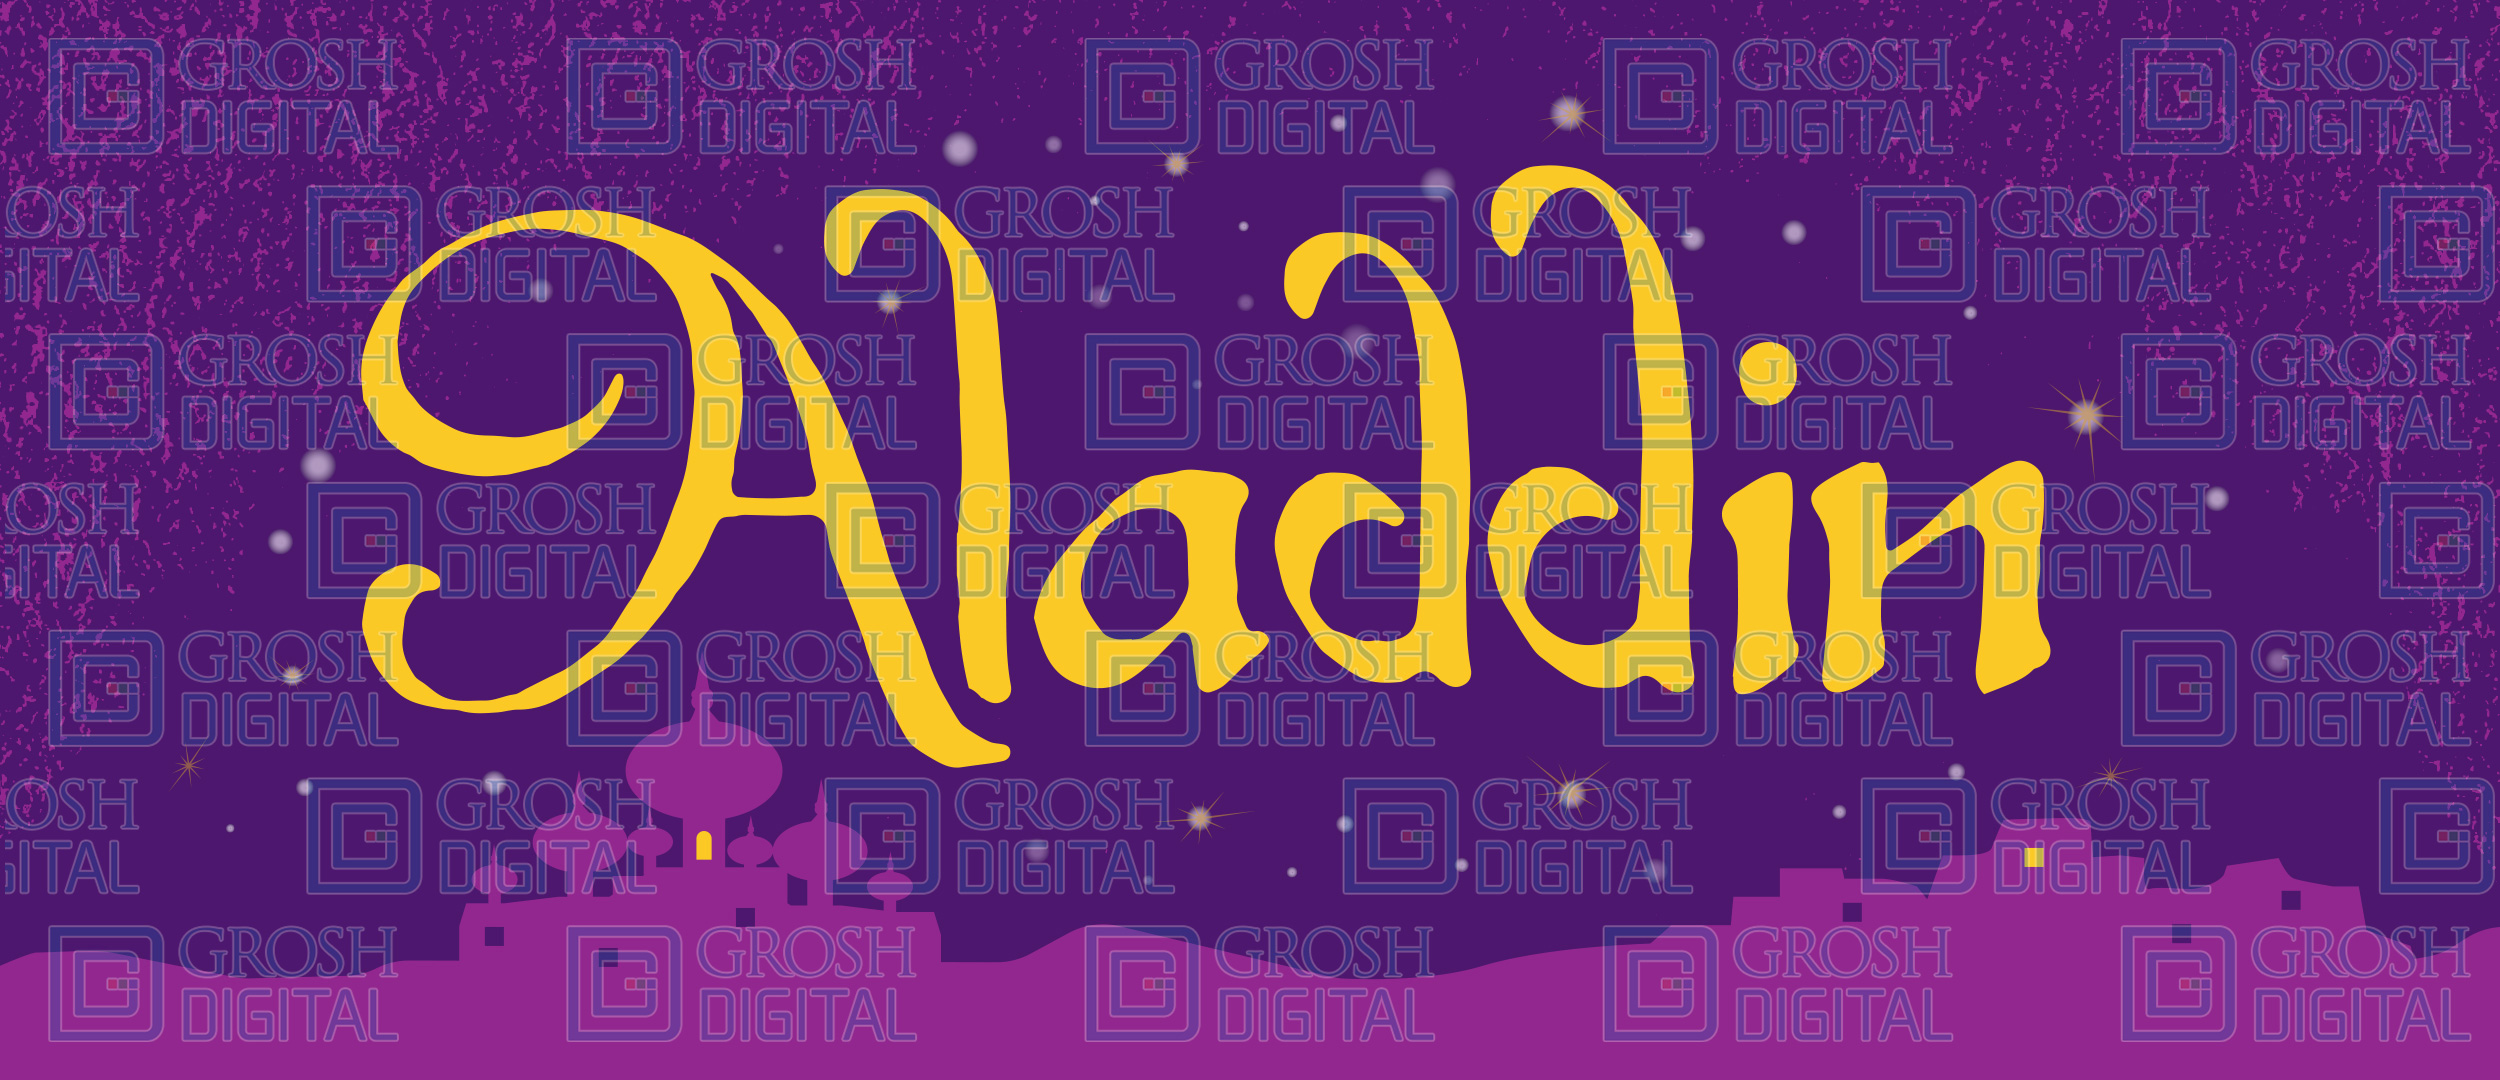 Aladdin Show Curtain Projected Backdrop for Aladdin, Show Curtains